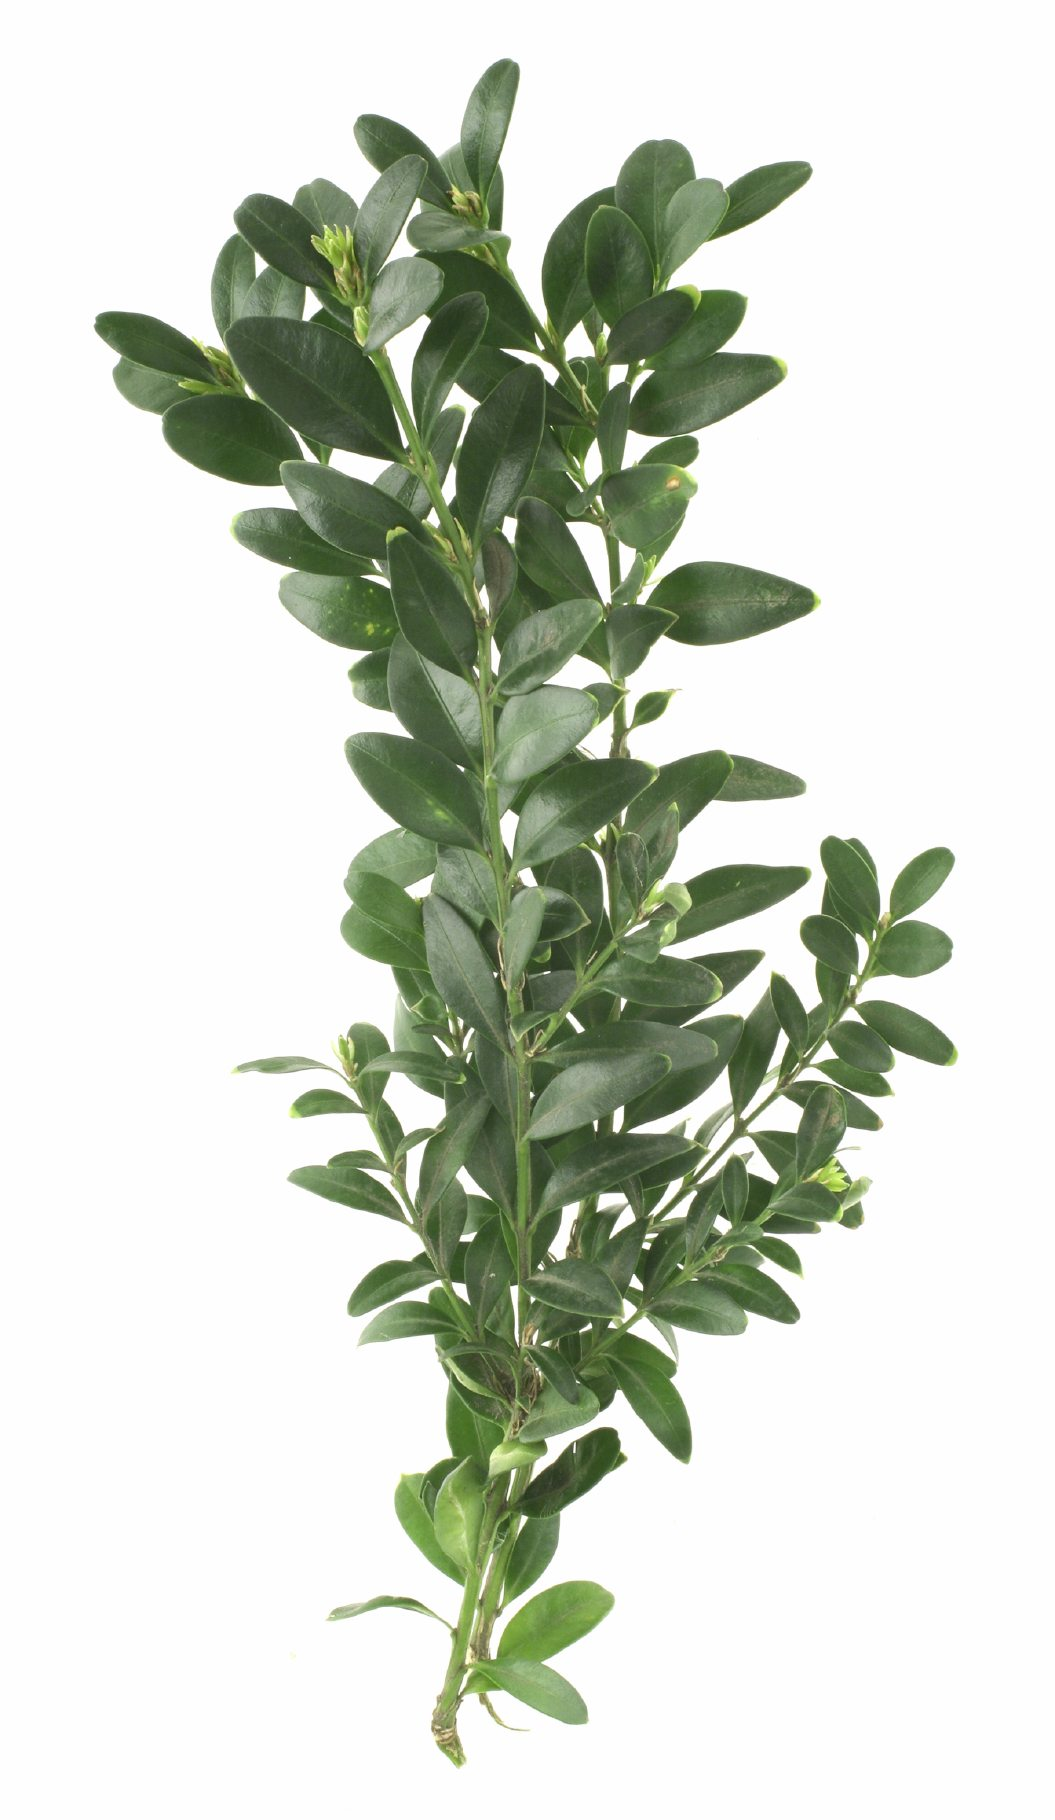 Hedge Bushes: Tips For Taking Boxwood Cuttings